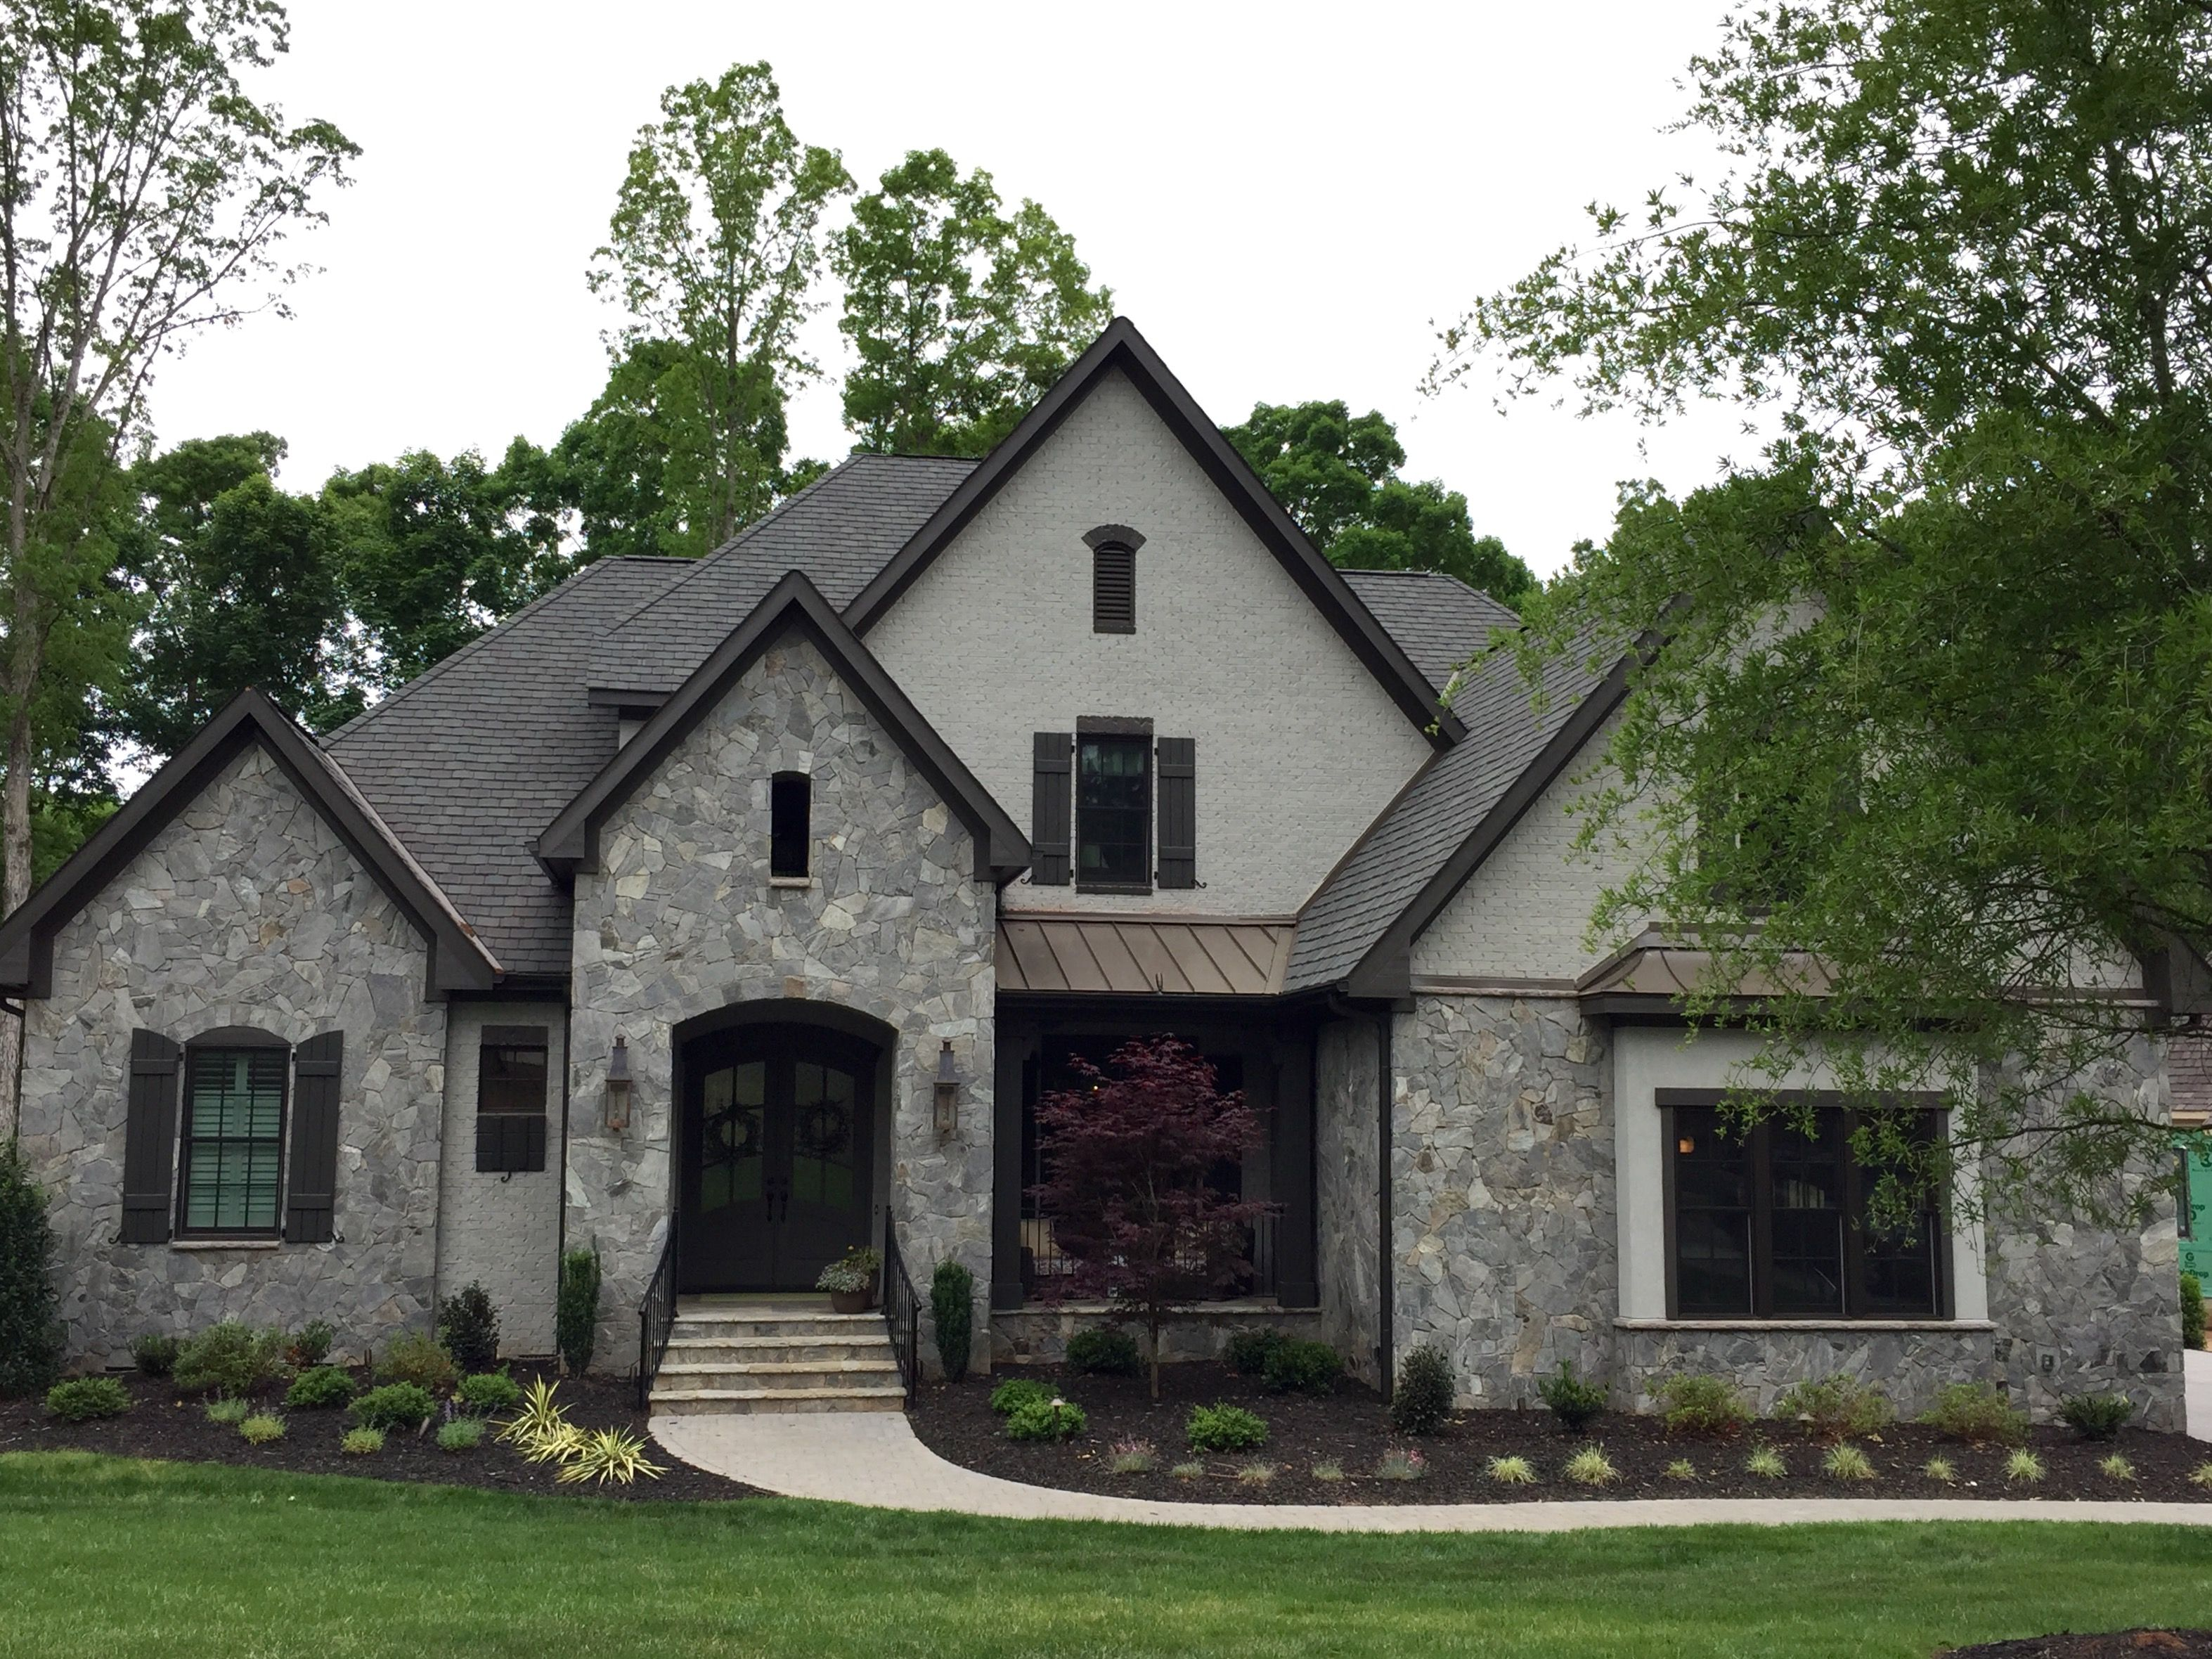 Arh plan asheville 1131f exterior 42 stone dove gray gray mortar brick painted sw7023 - Grey painted house exteriors model ...